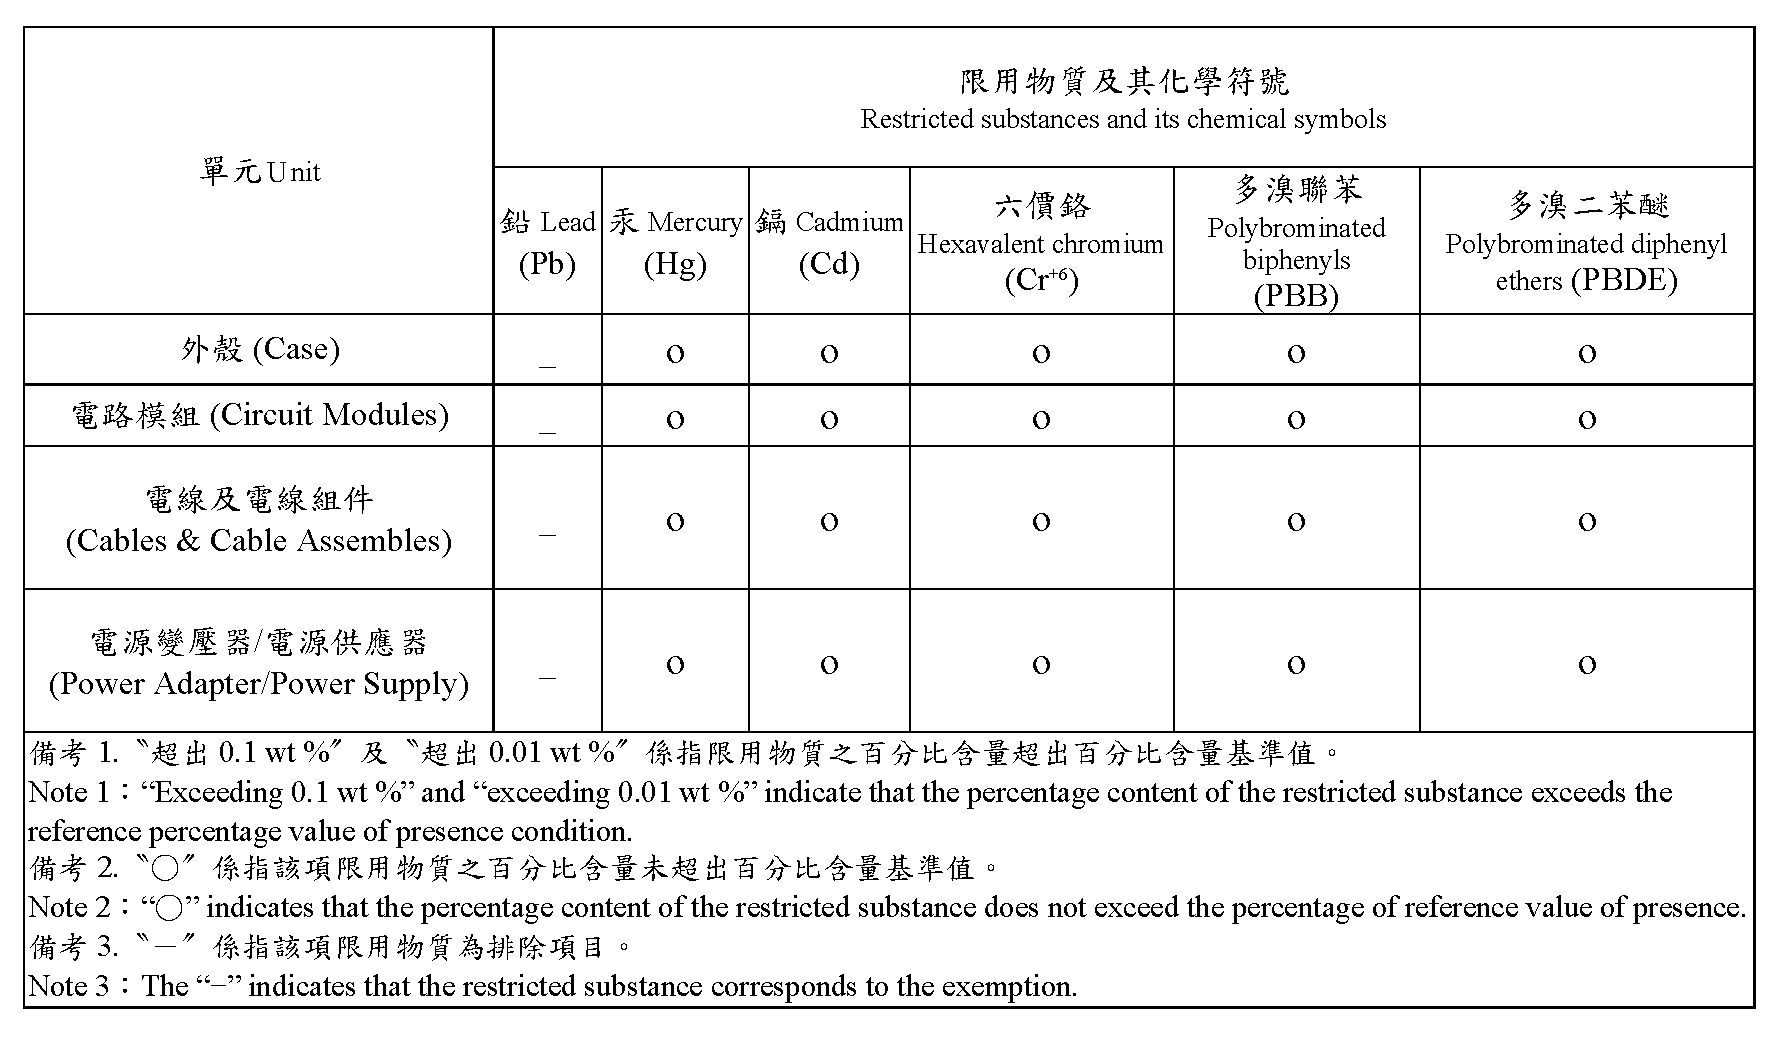 Taiwan RoHS table for V300